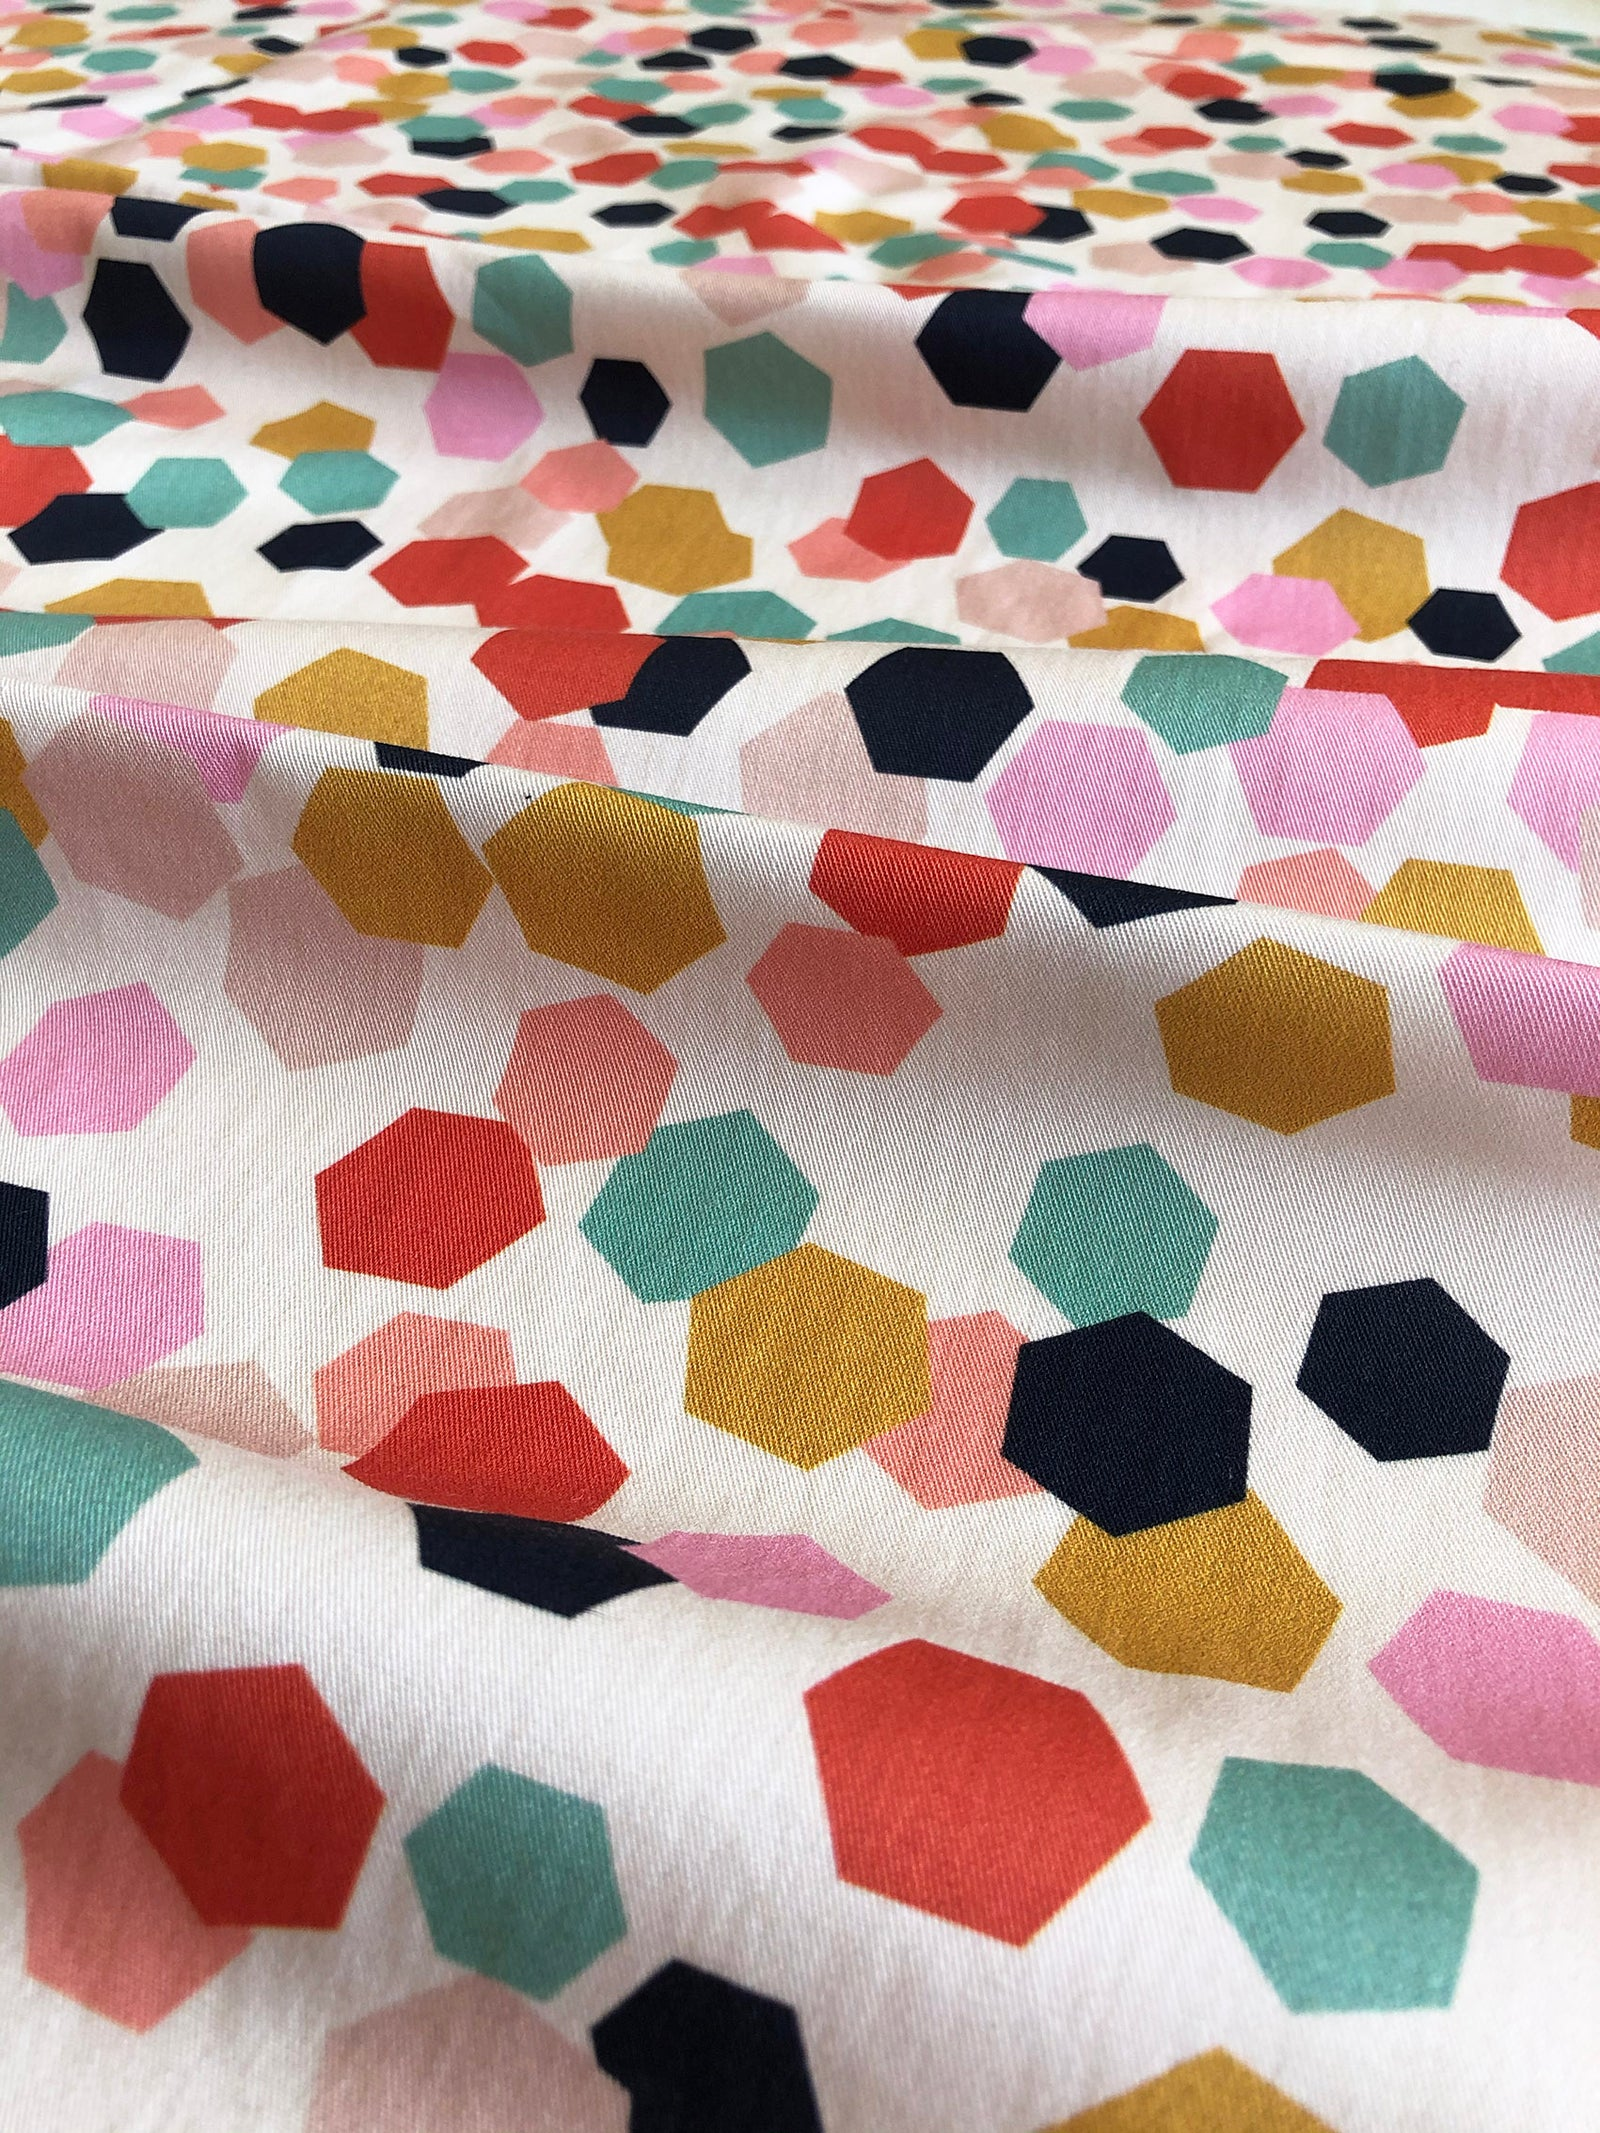 Hexagon Confetti - Cotton Twill fabric by the half metre